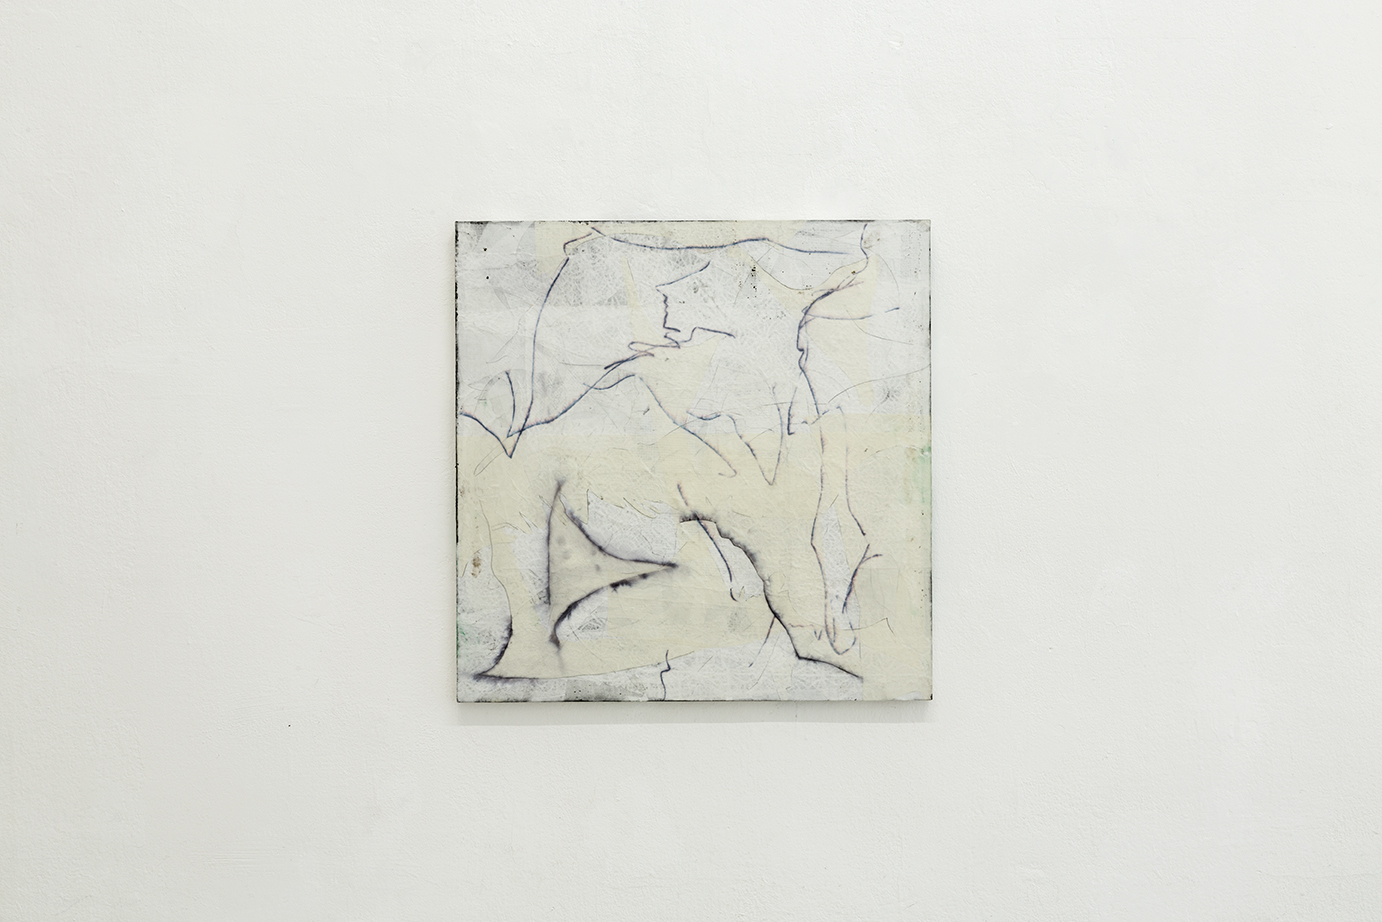 Nora Kapfer, untitled, 2018 bitumen, oil, felt pen and paper on wood, 61 x 60 cm